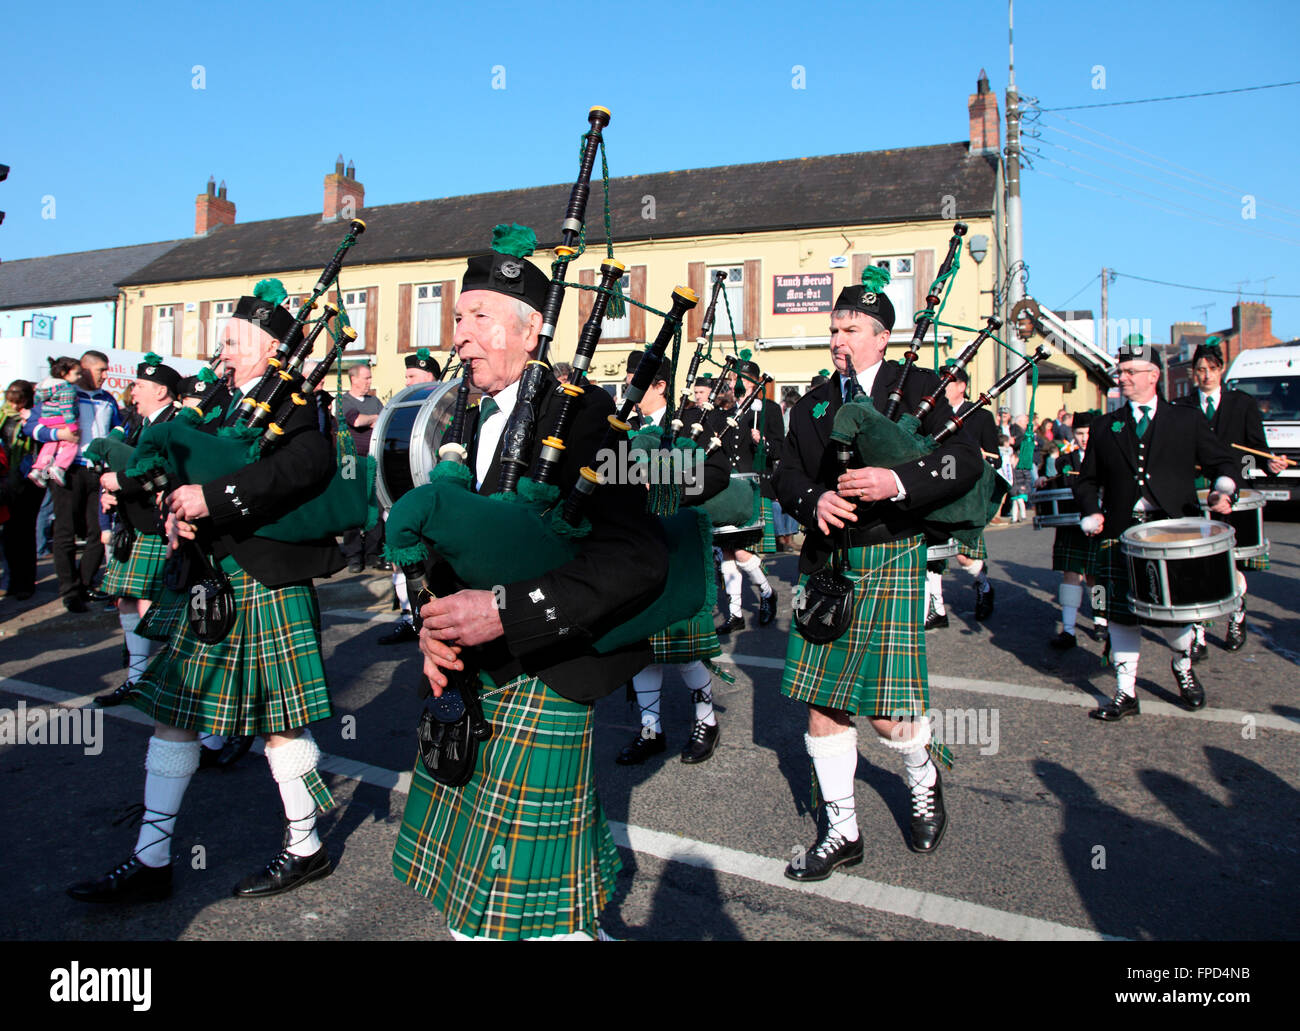 Corduff Pipe Band in Carrickmacross St Patricks Day Parade - Stock Image